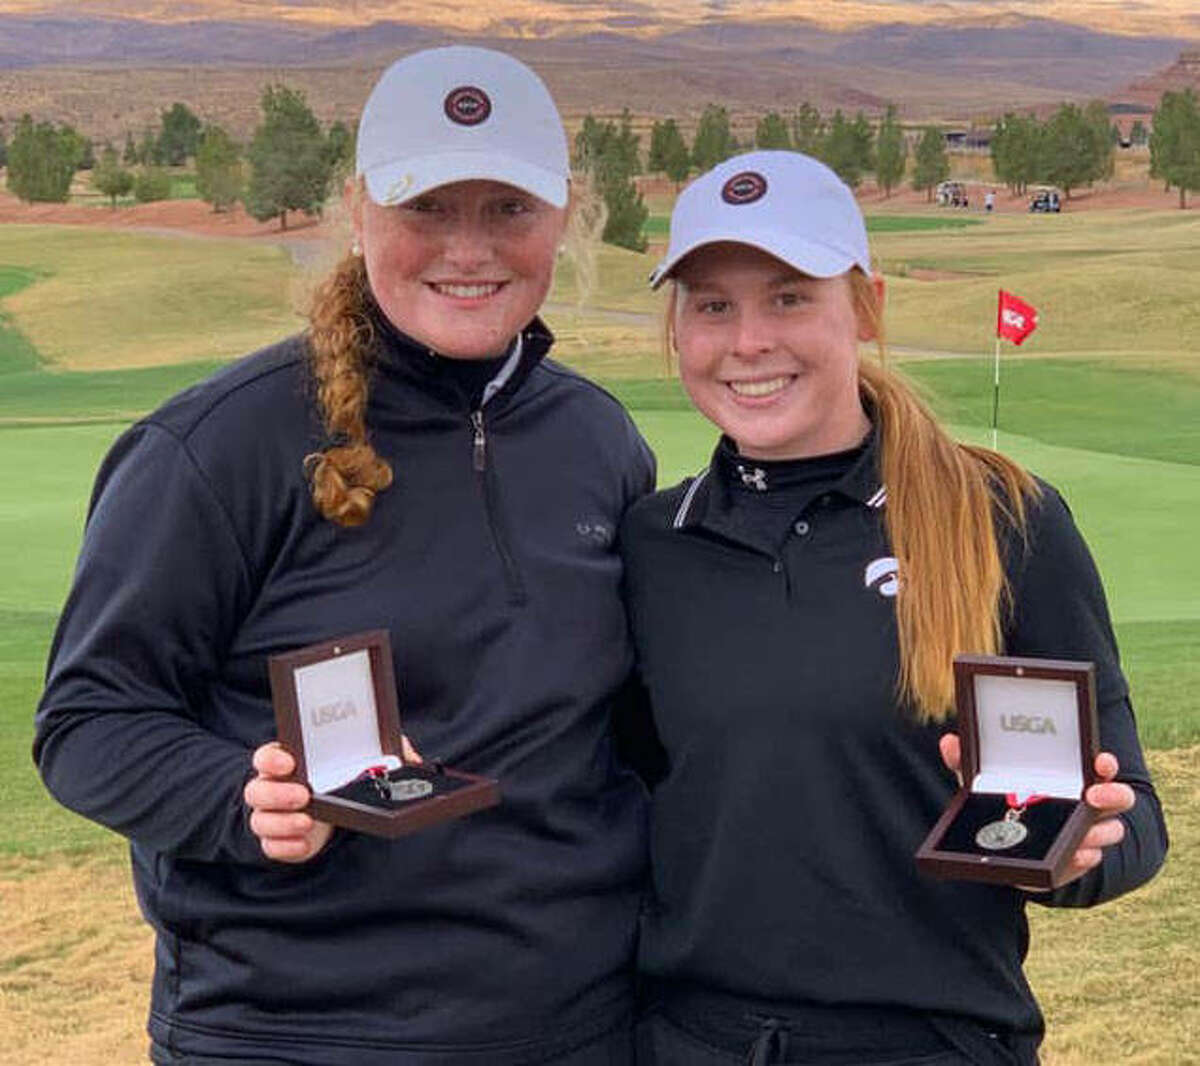 Marquette junior Gracie Piar, left, and Edwardsville junior Riley Lewis show off their championship medals from the St. Georga Qualifier on Nov. 9 in St. George, Utah.